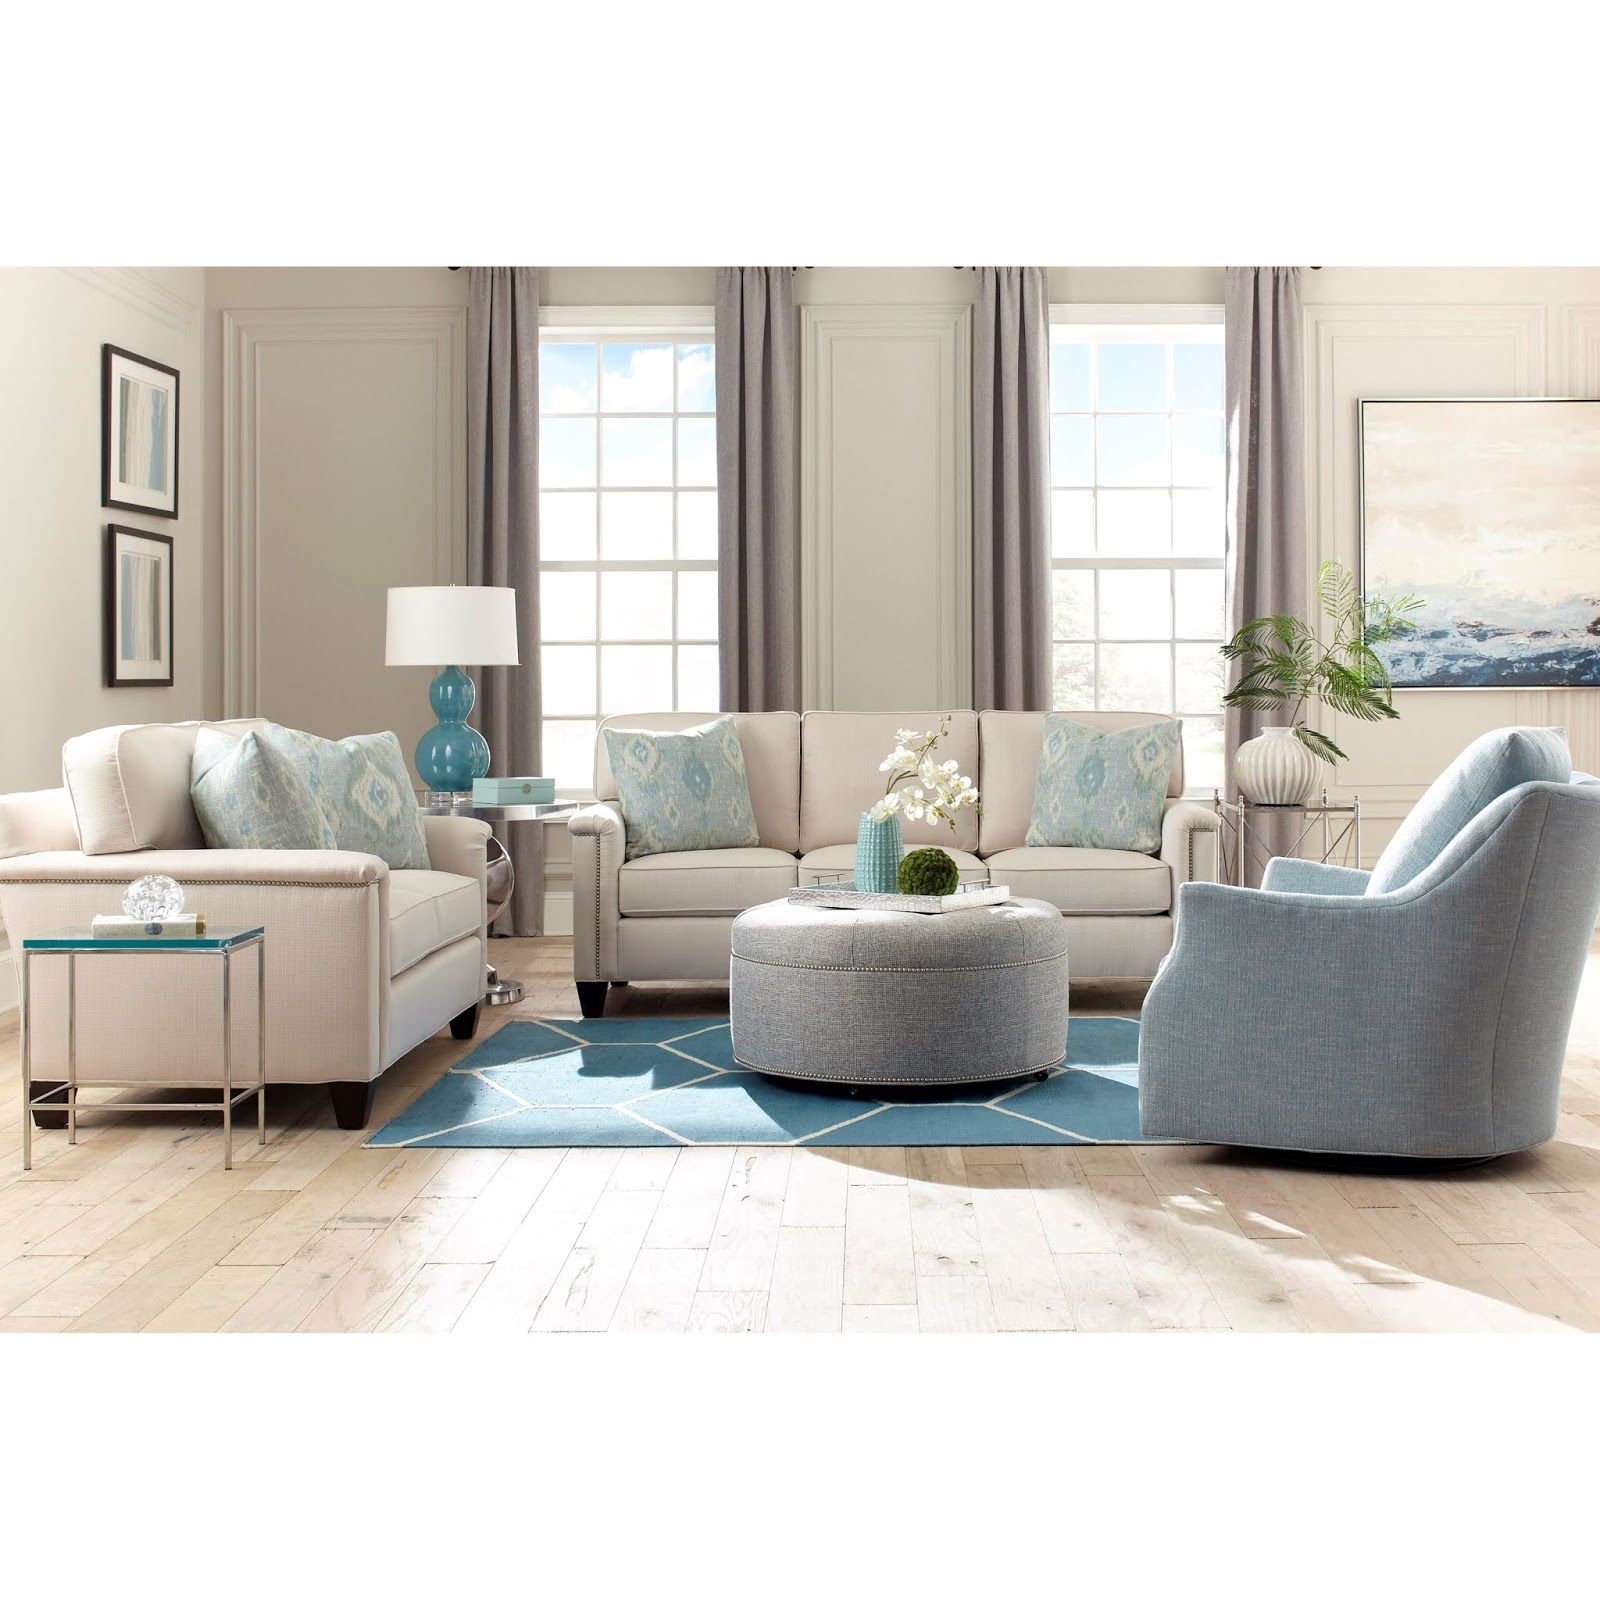 Huntington House Furniture Quality Baer S Furnishing 2018